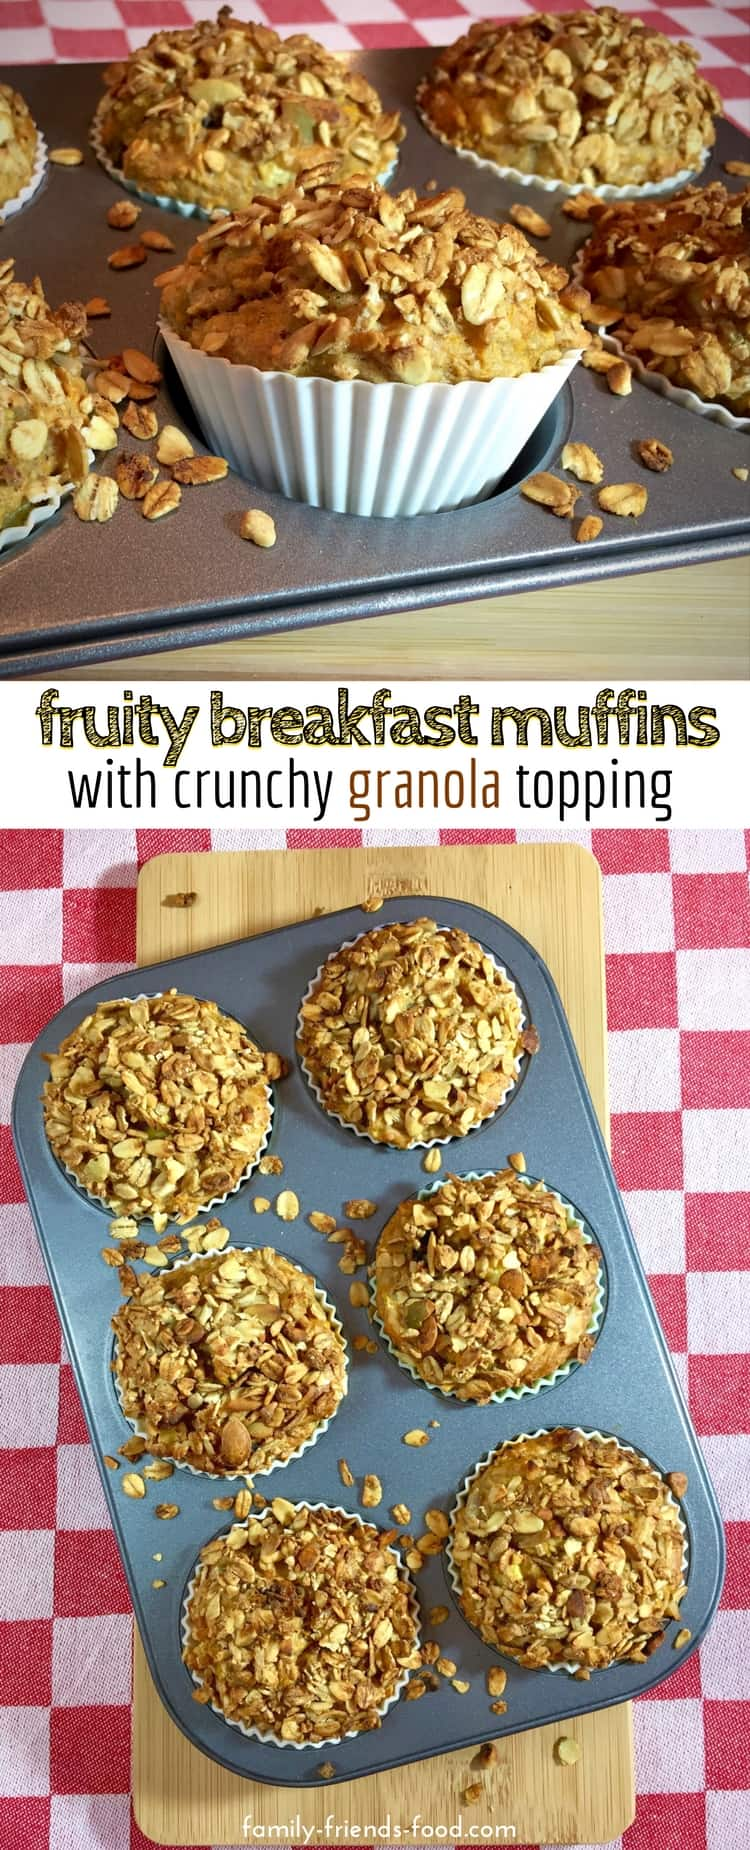 Packed with fruit & veg, these deliciously moist breakfast muffins are low in fat and contain no added sugar. A perfectly healthy start to the day!